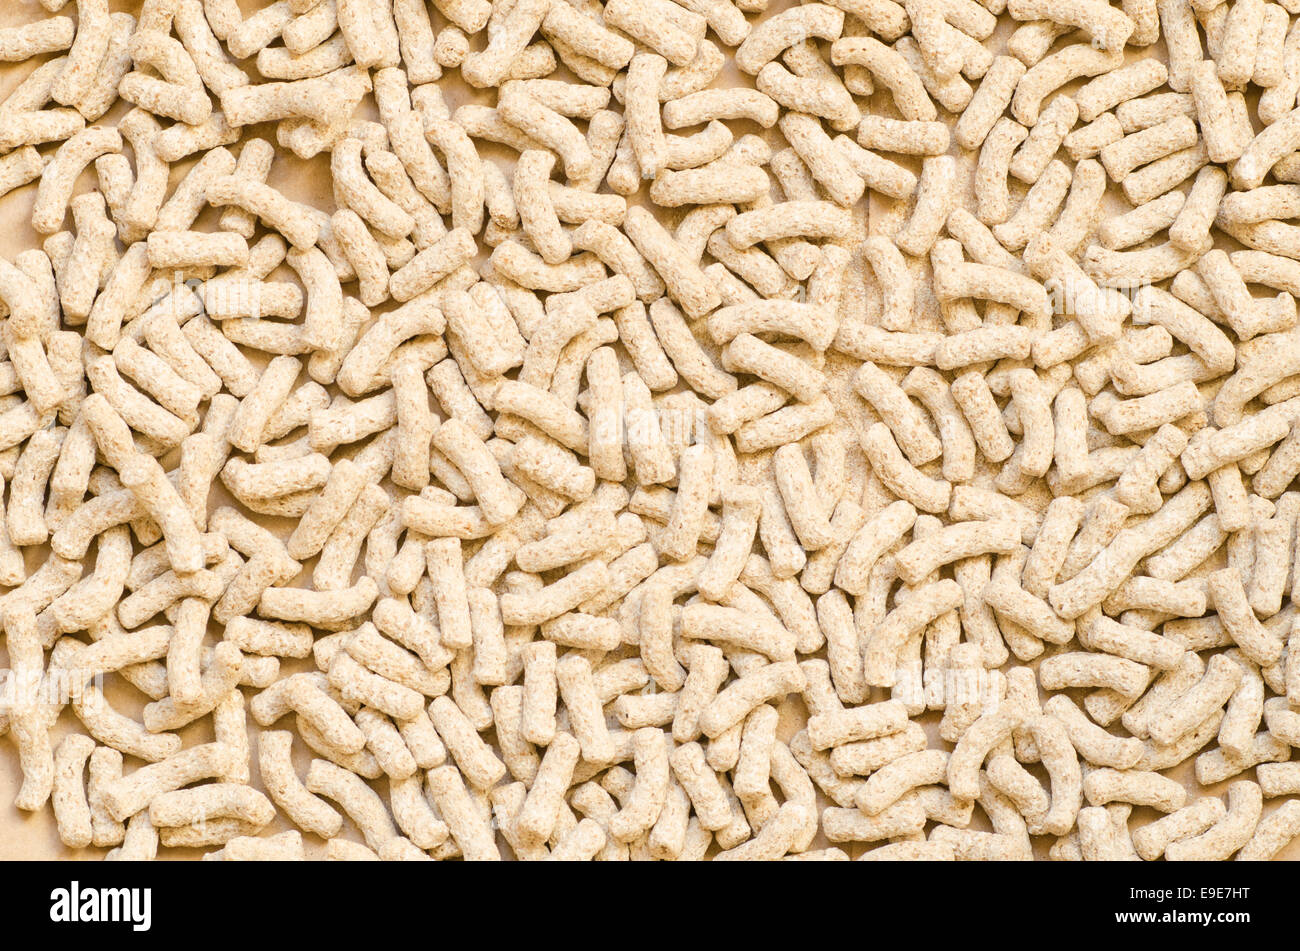 dietary fiber cereals food background - Stock Image